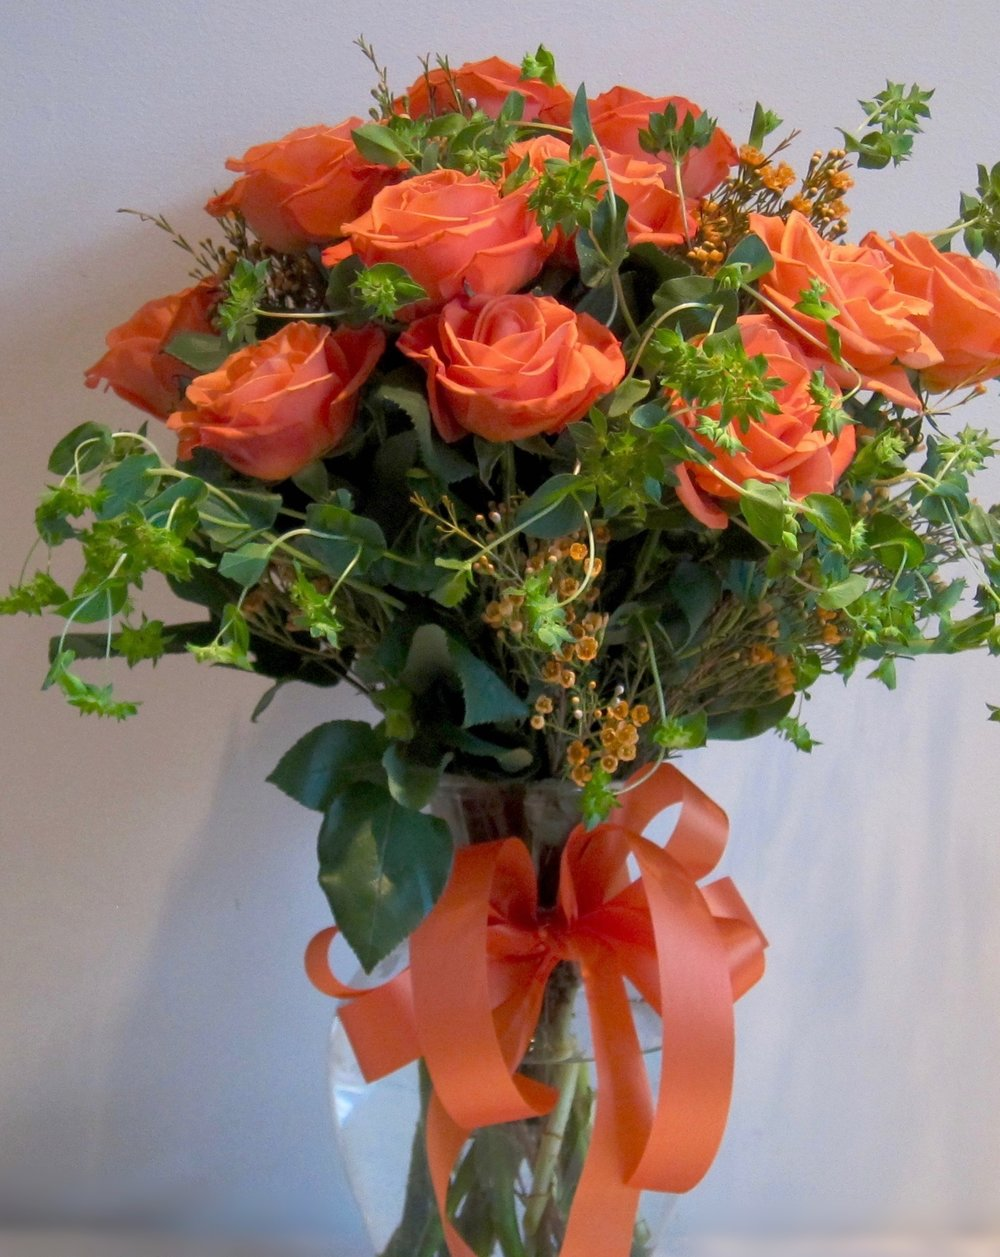 CASUAL ROSES   A dozen arranged in a loose, casual style with waxflower and buplurem foliage. Allow next day delivery for the color of your choice, $65.